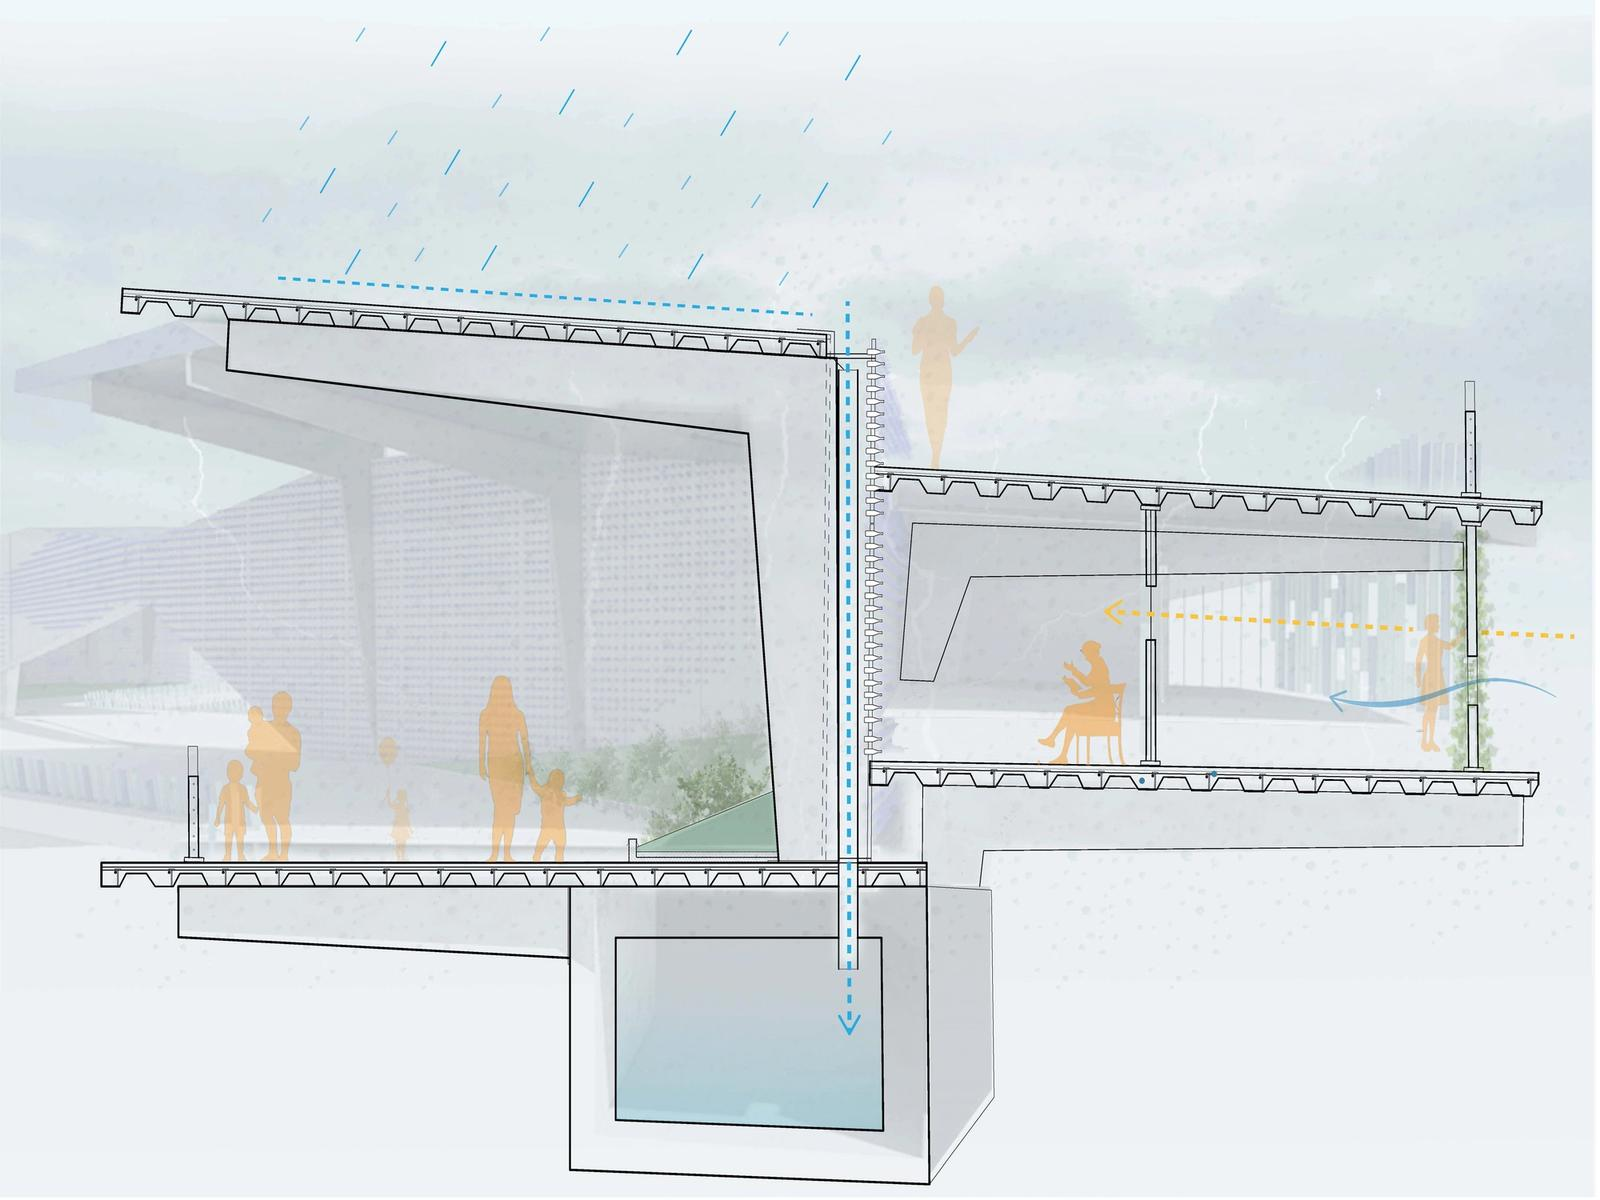 Wall Section showing sustainable strategies of water collection, natural ventilation, and daylighting.